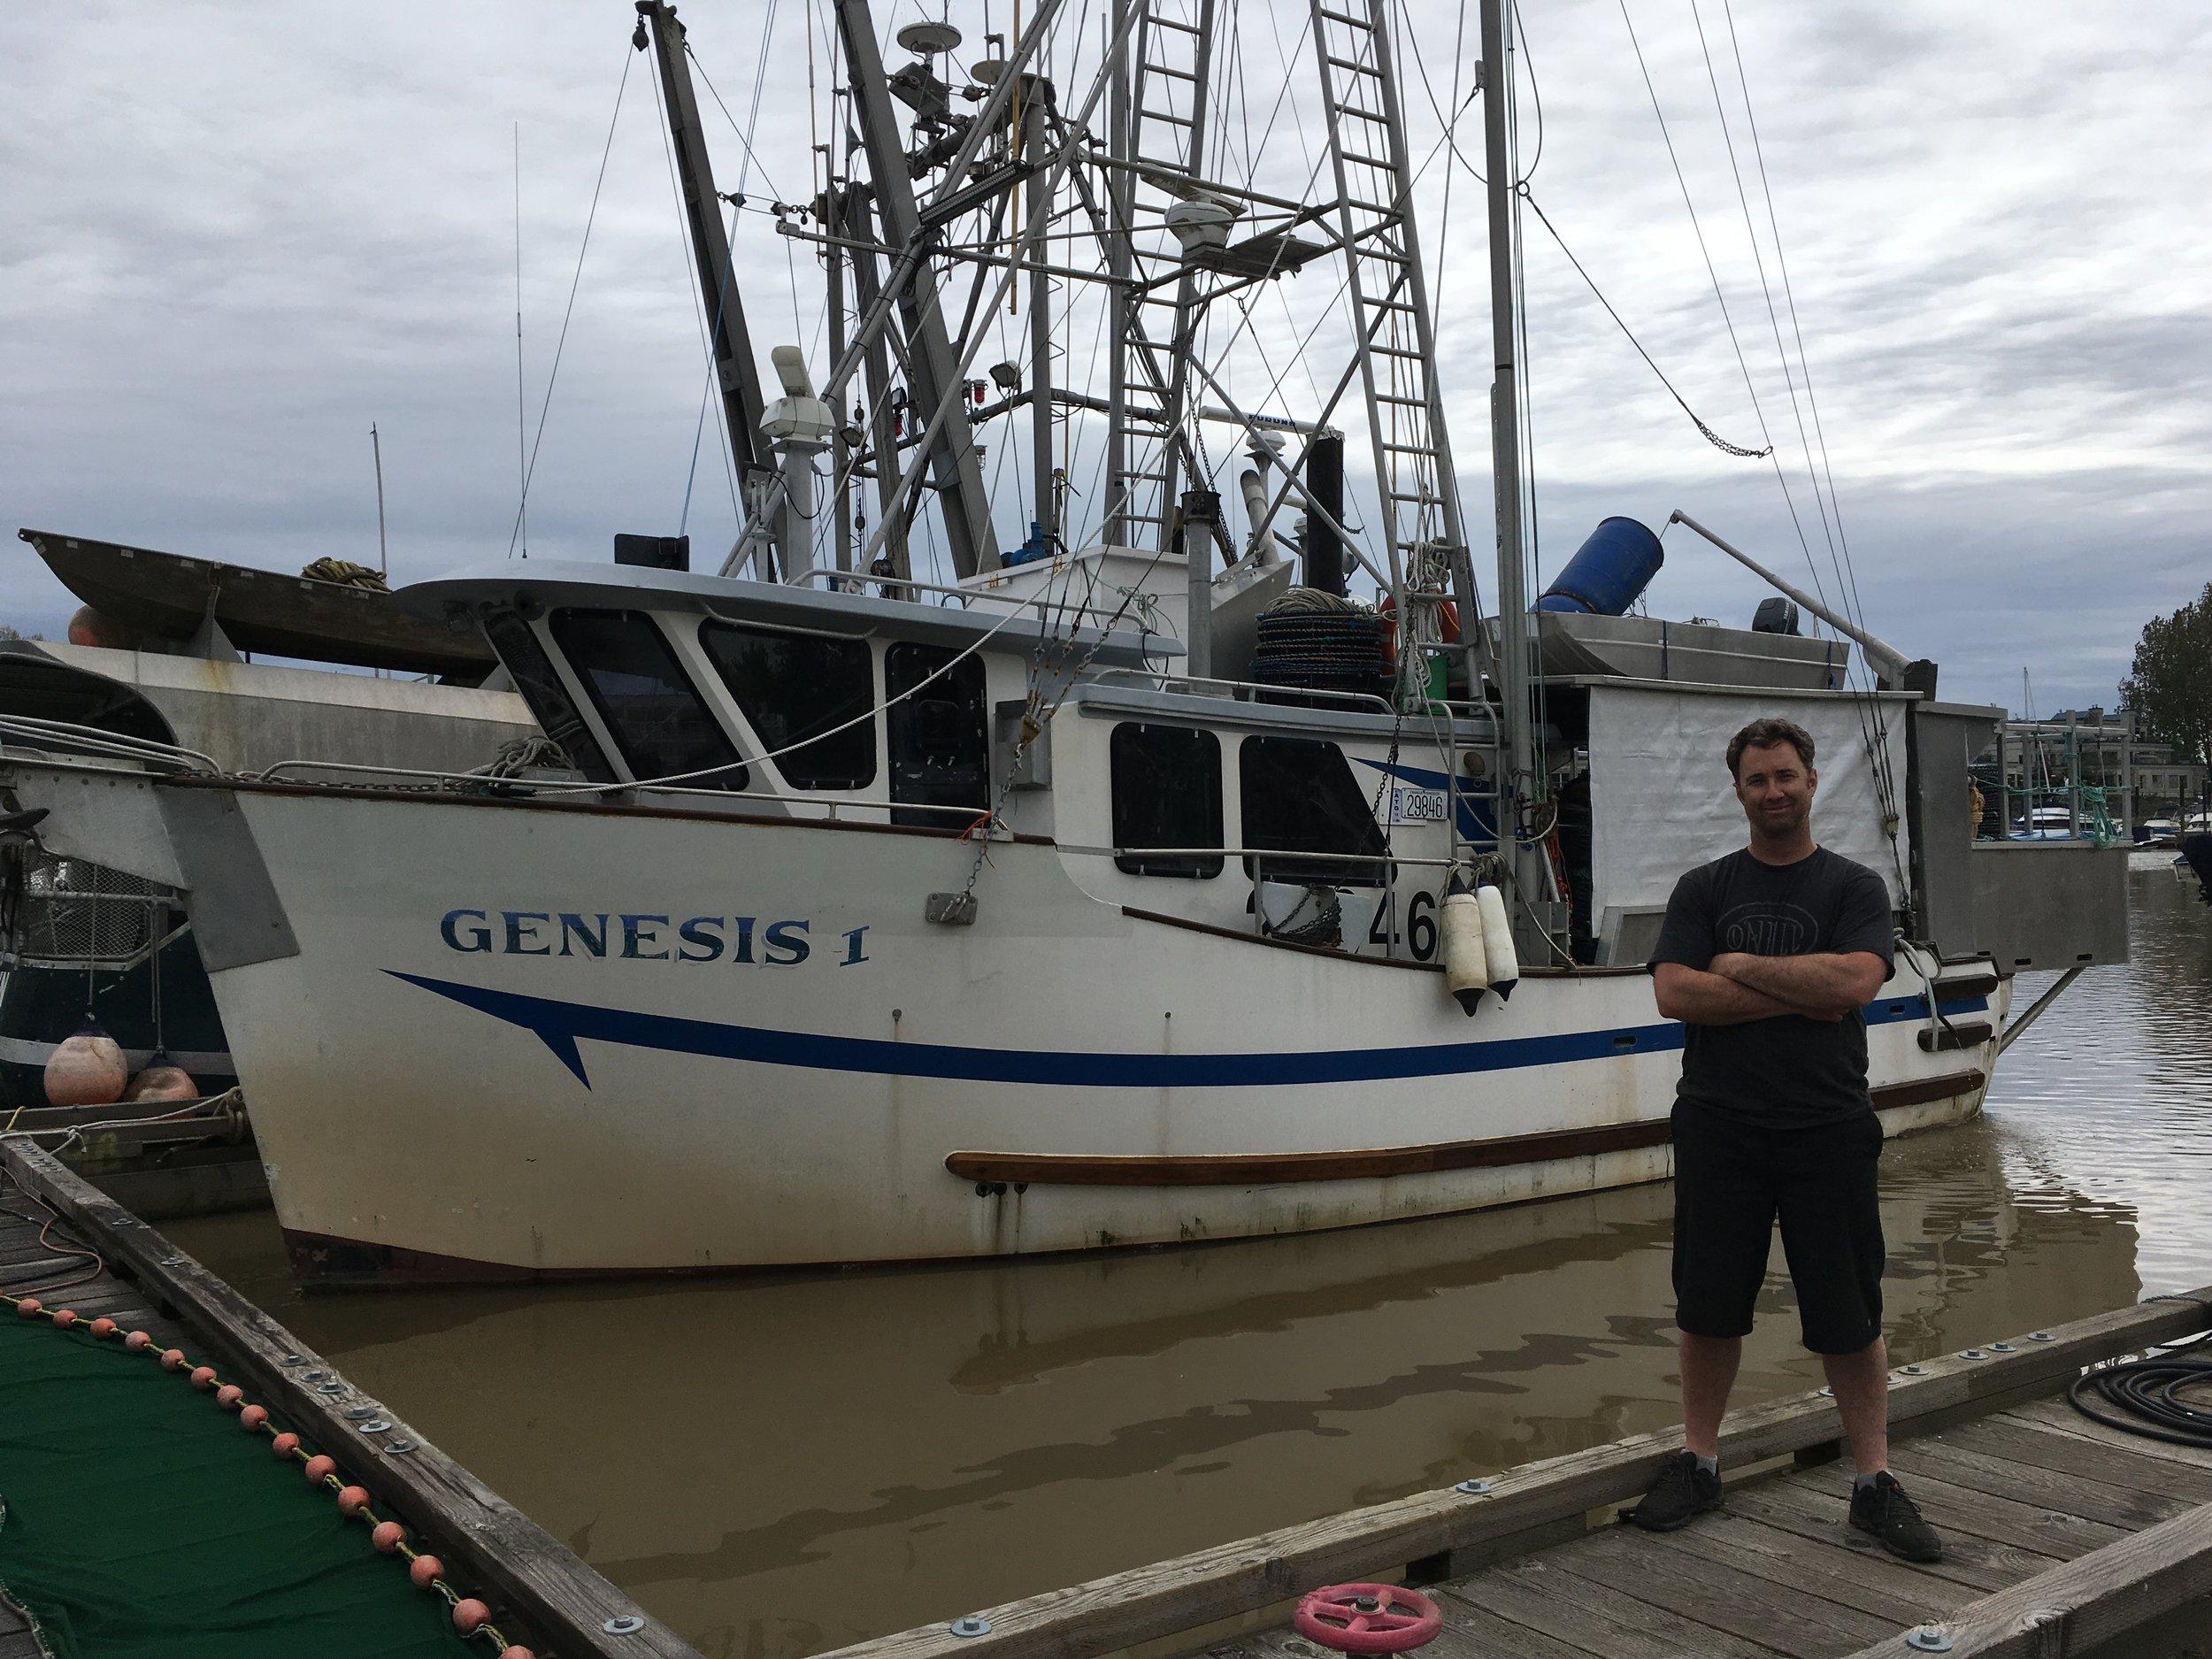 That the methods by which we harvest wild-caught seafood should not damage the ocean floor and should aid in the sustainability of our commercial fishing industry. -